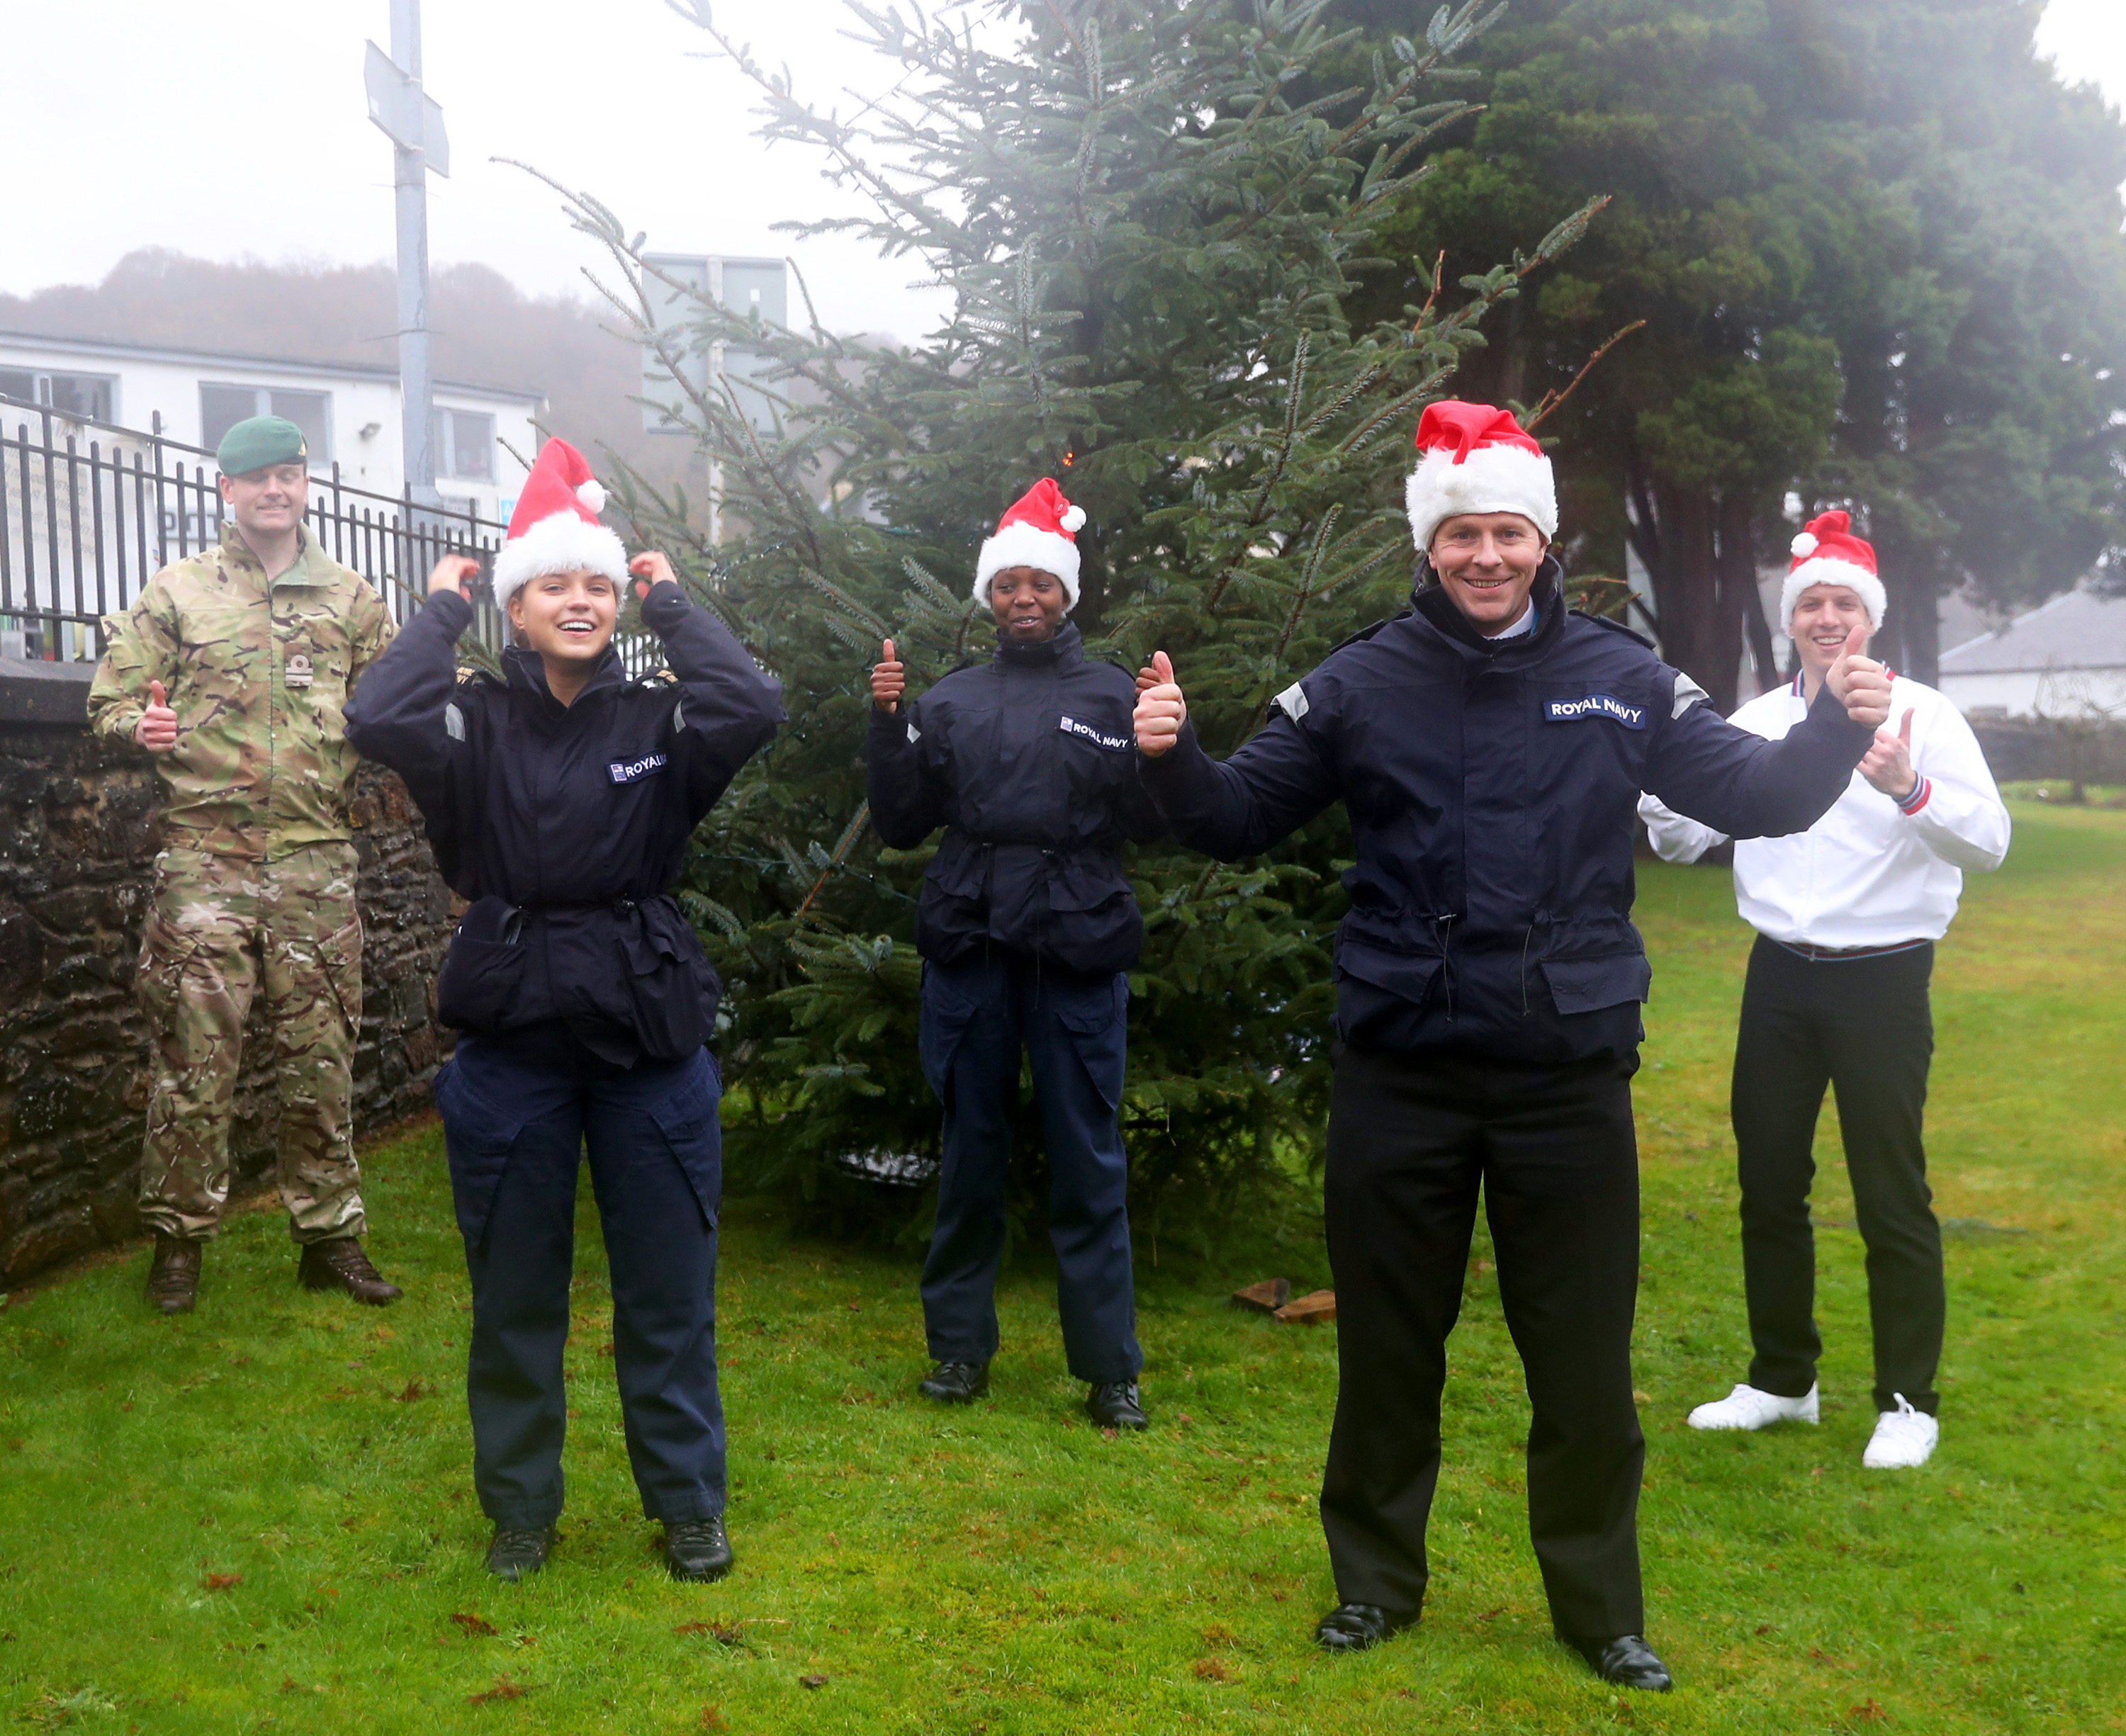 Sailors with Christmas trees